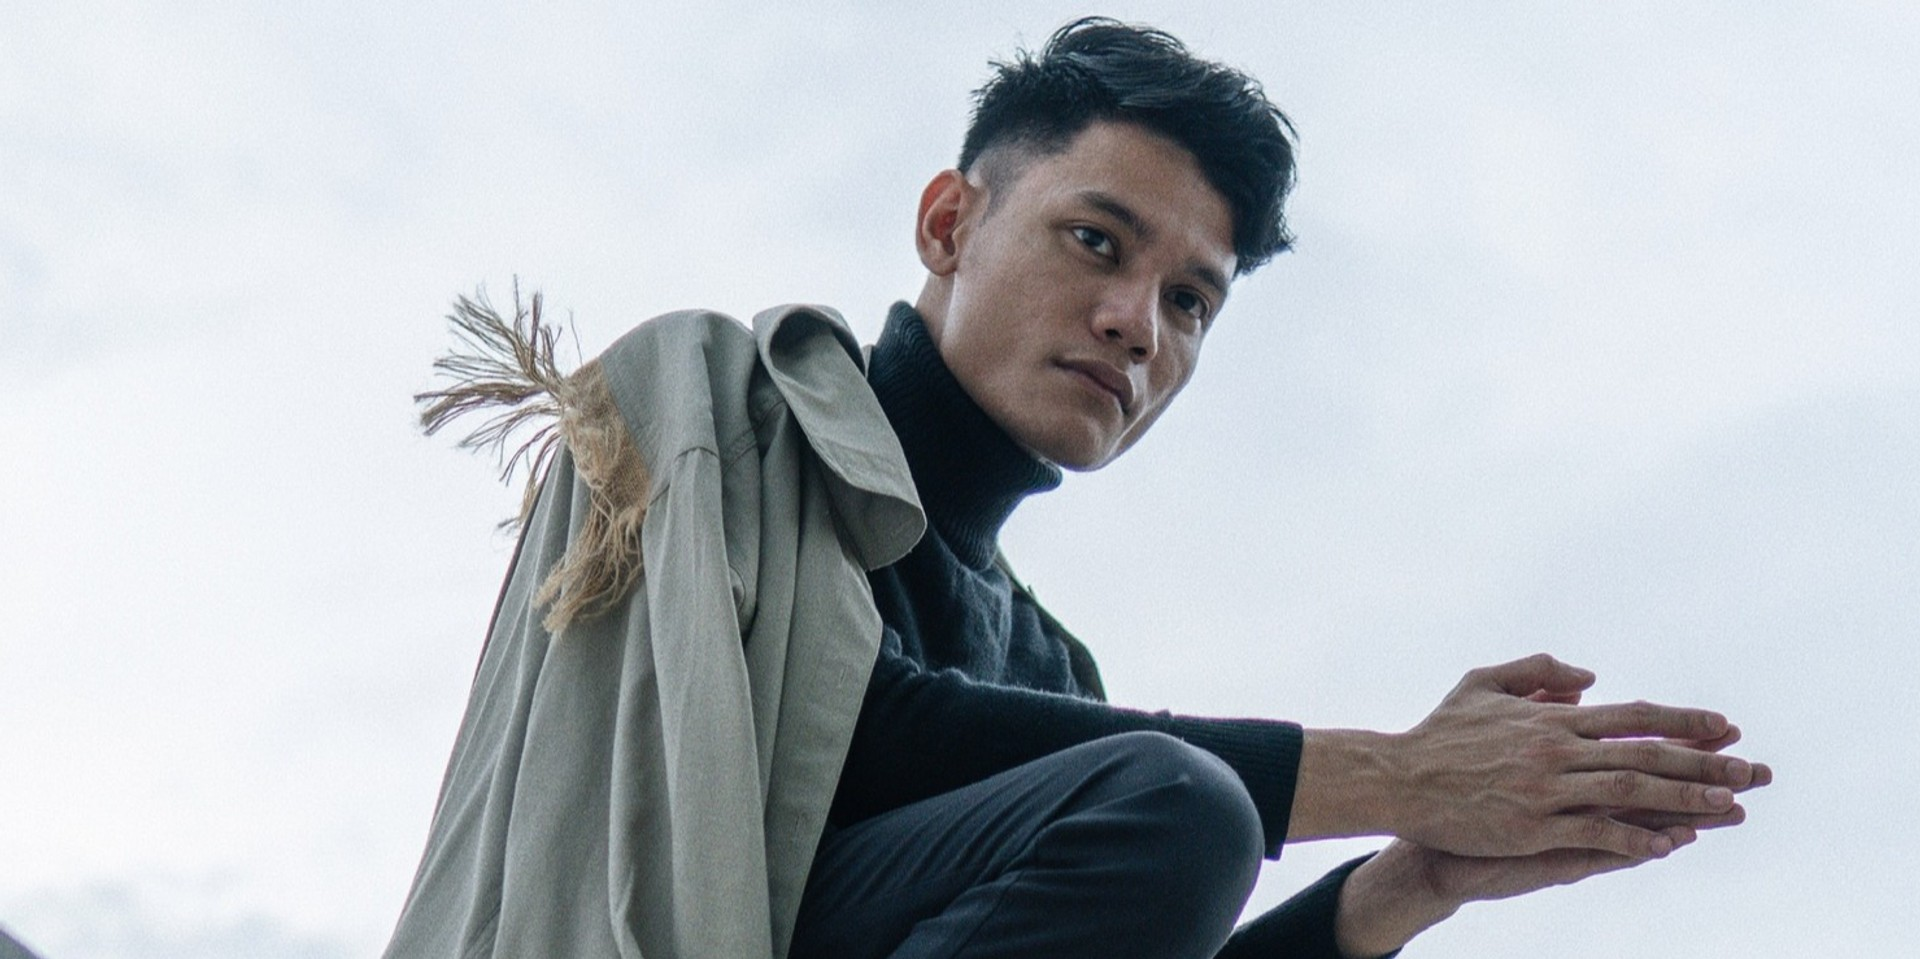 Asia Spotlight: Unafraid and undeterred, Alextbh emerges as a symbol of change in Malaysia's music scene